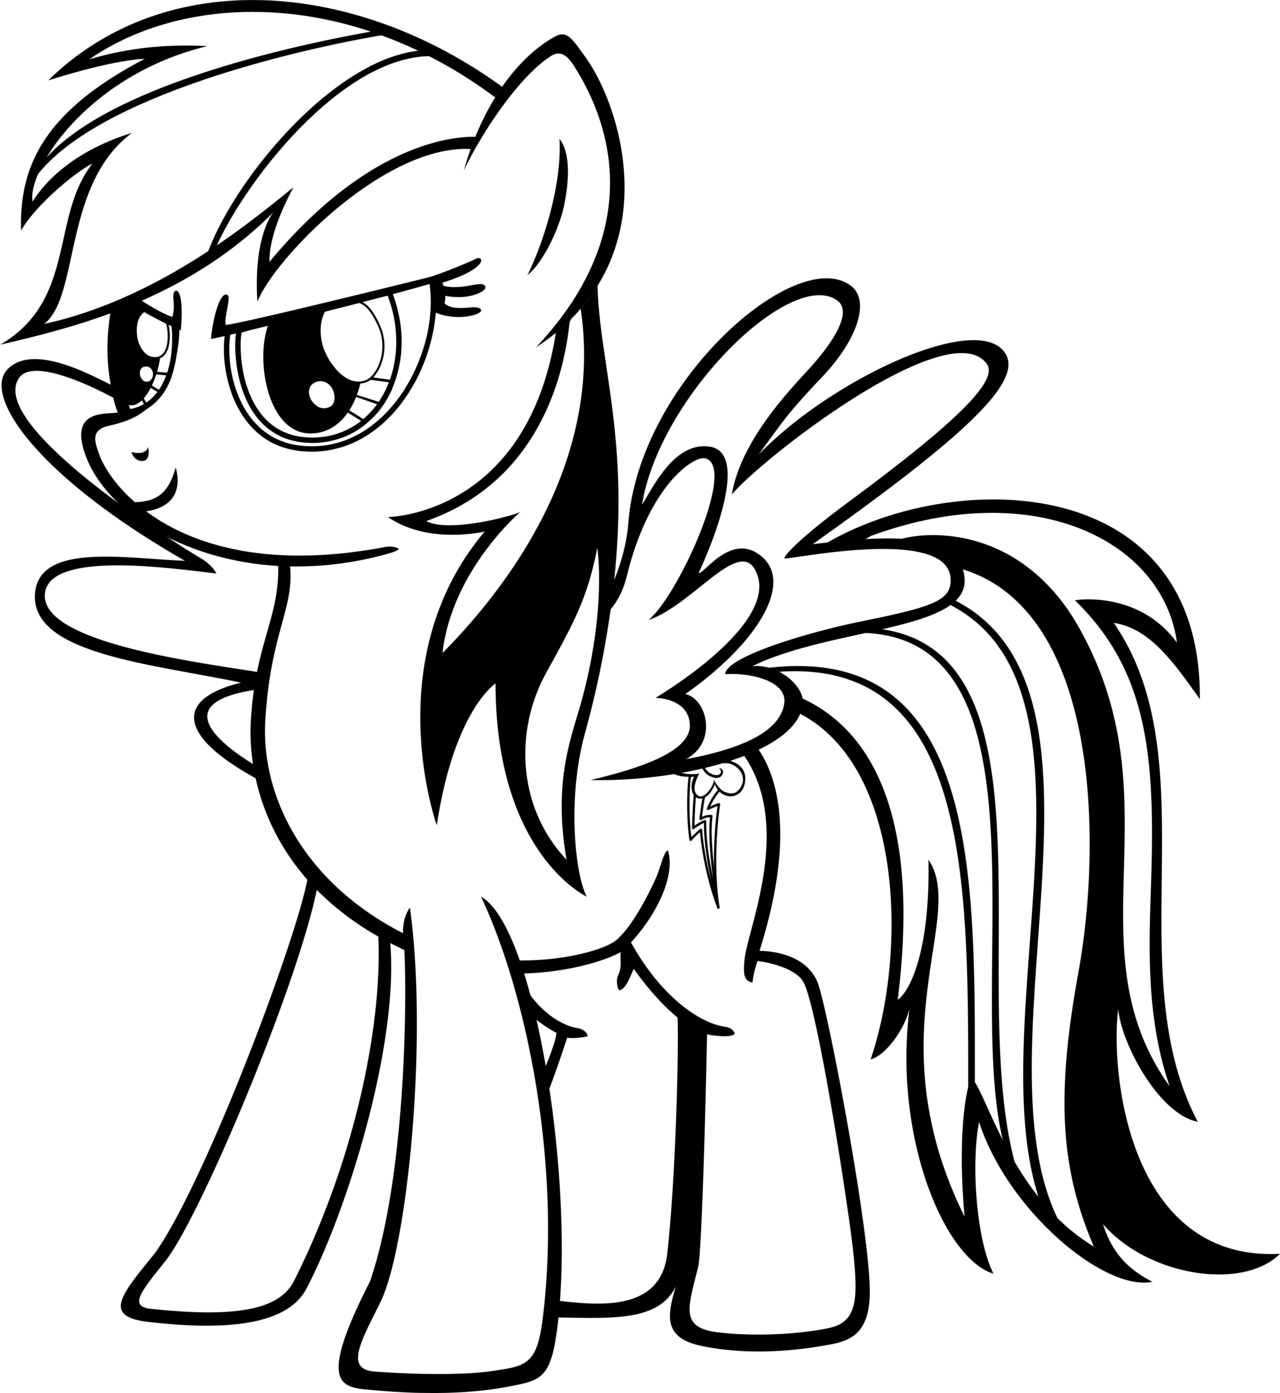 Rainbow Dash Coloring Pages Best Coloring Pages For Kids Free Coloring Sheets For